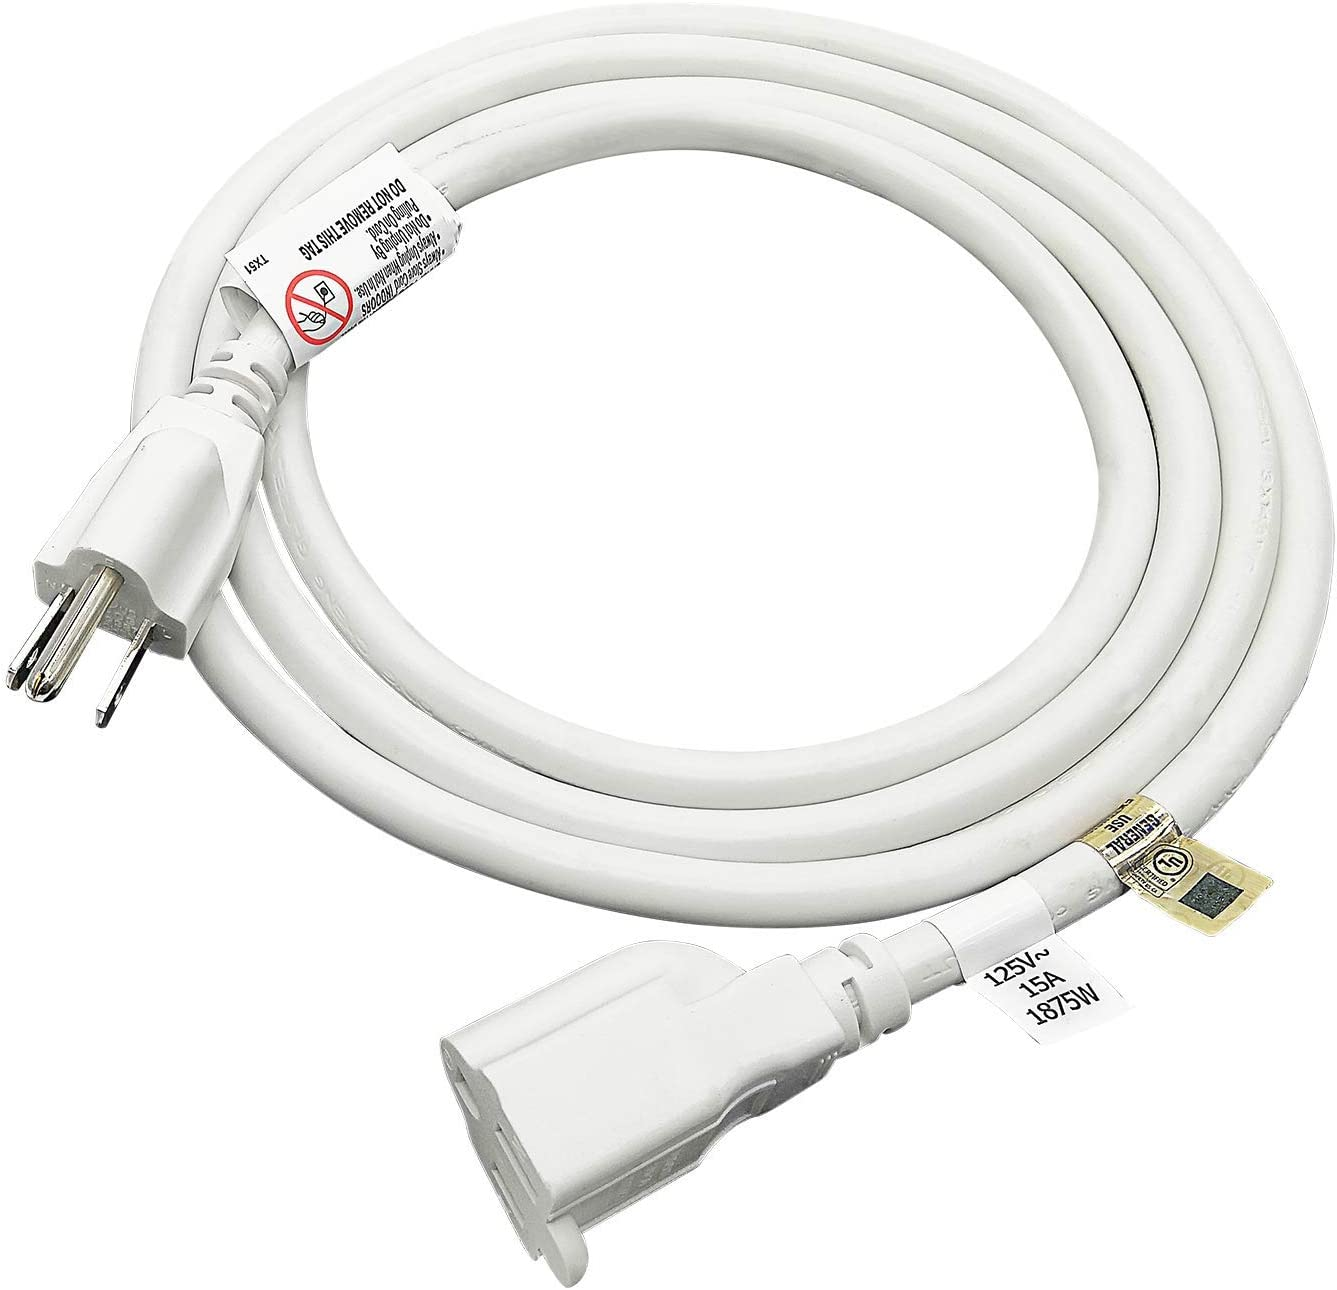 FIRMERST 1875W Heavy Duty Extension Cord 6 Feet 14 AWG 15A White, UL Listed